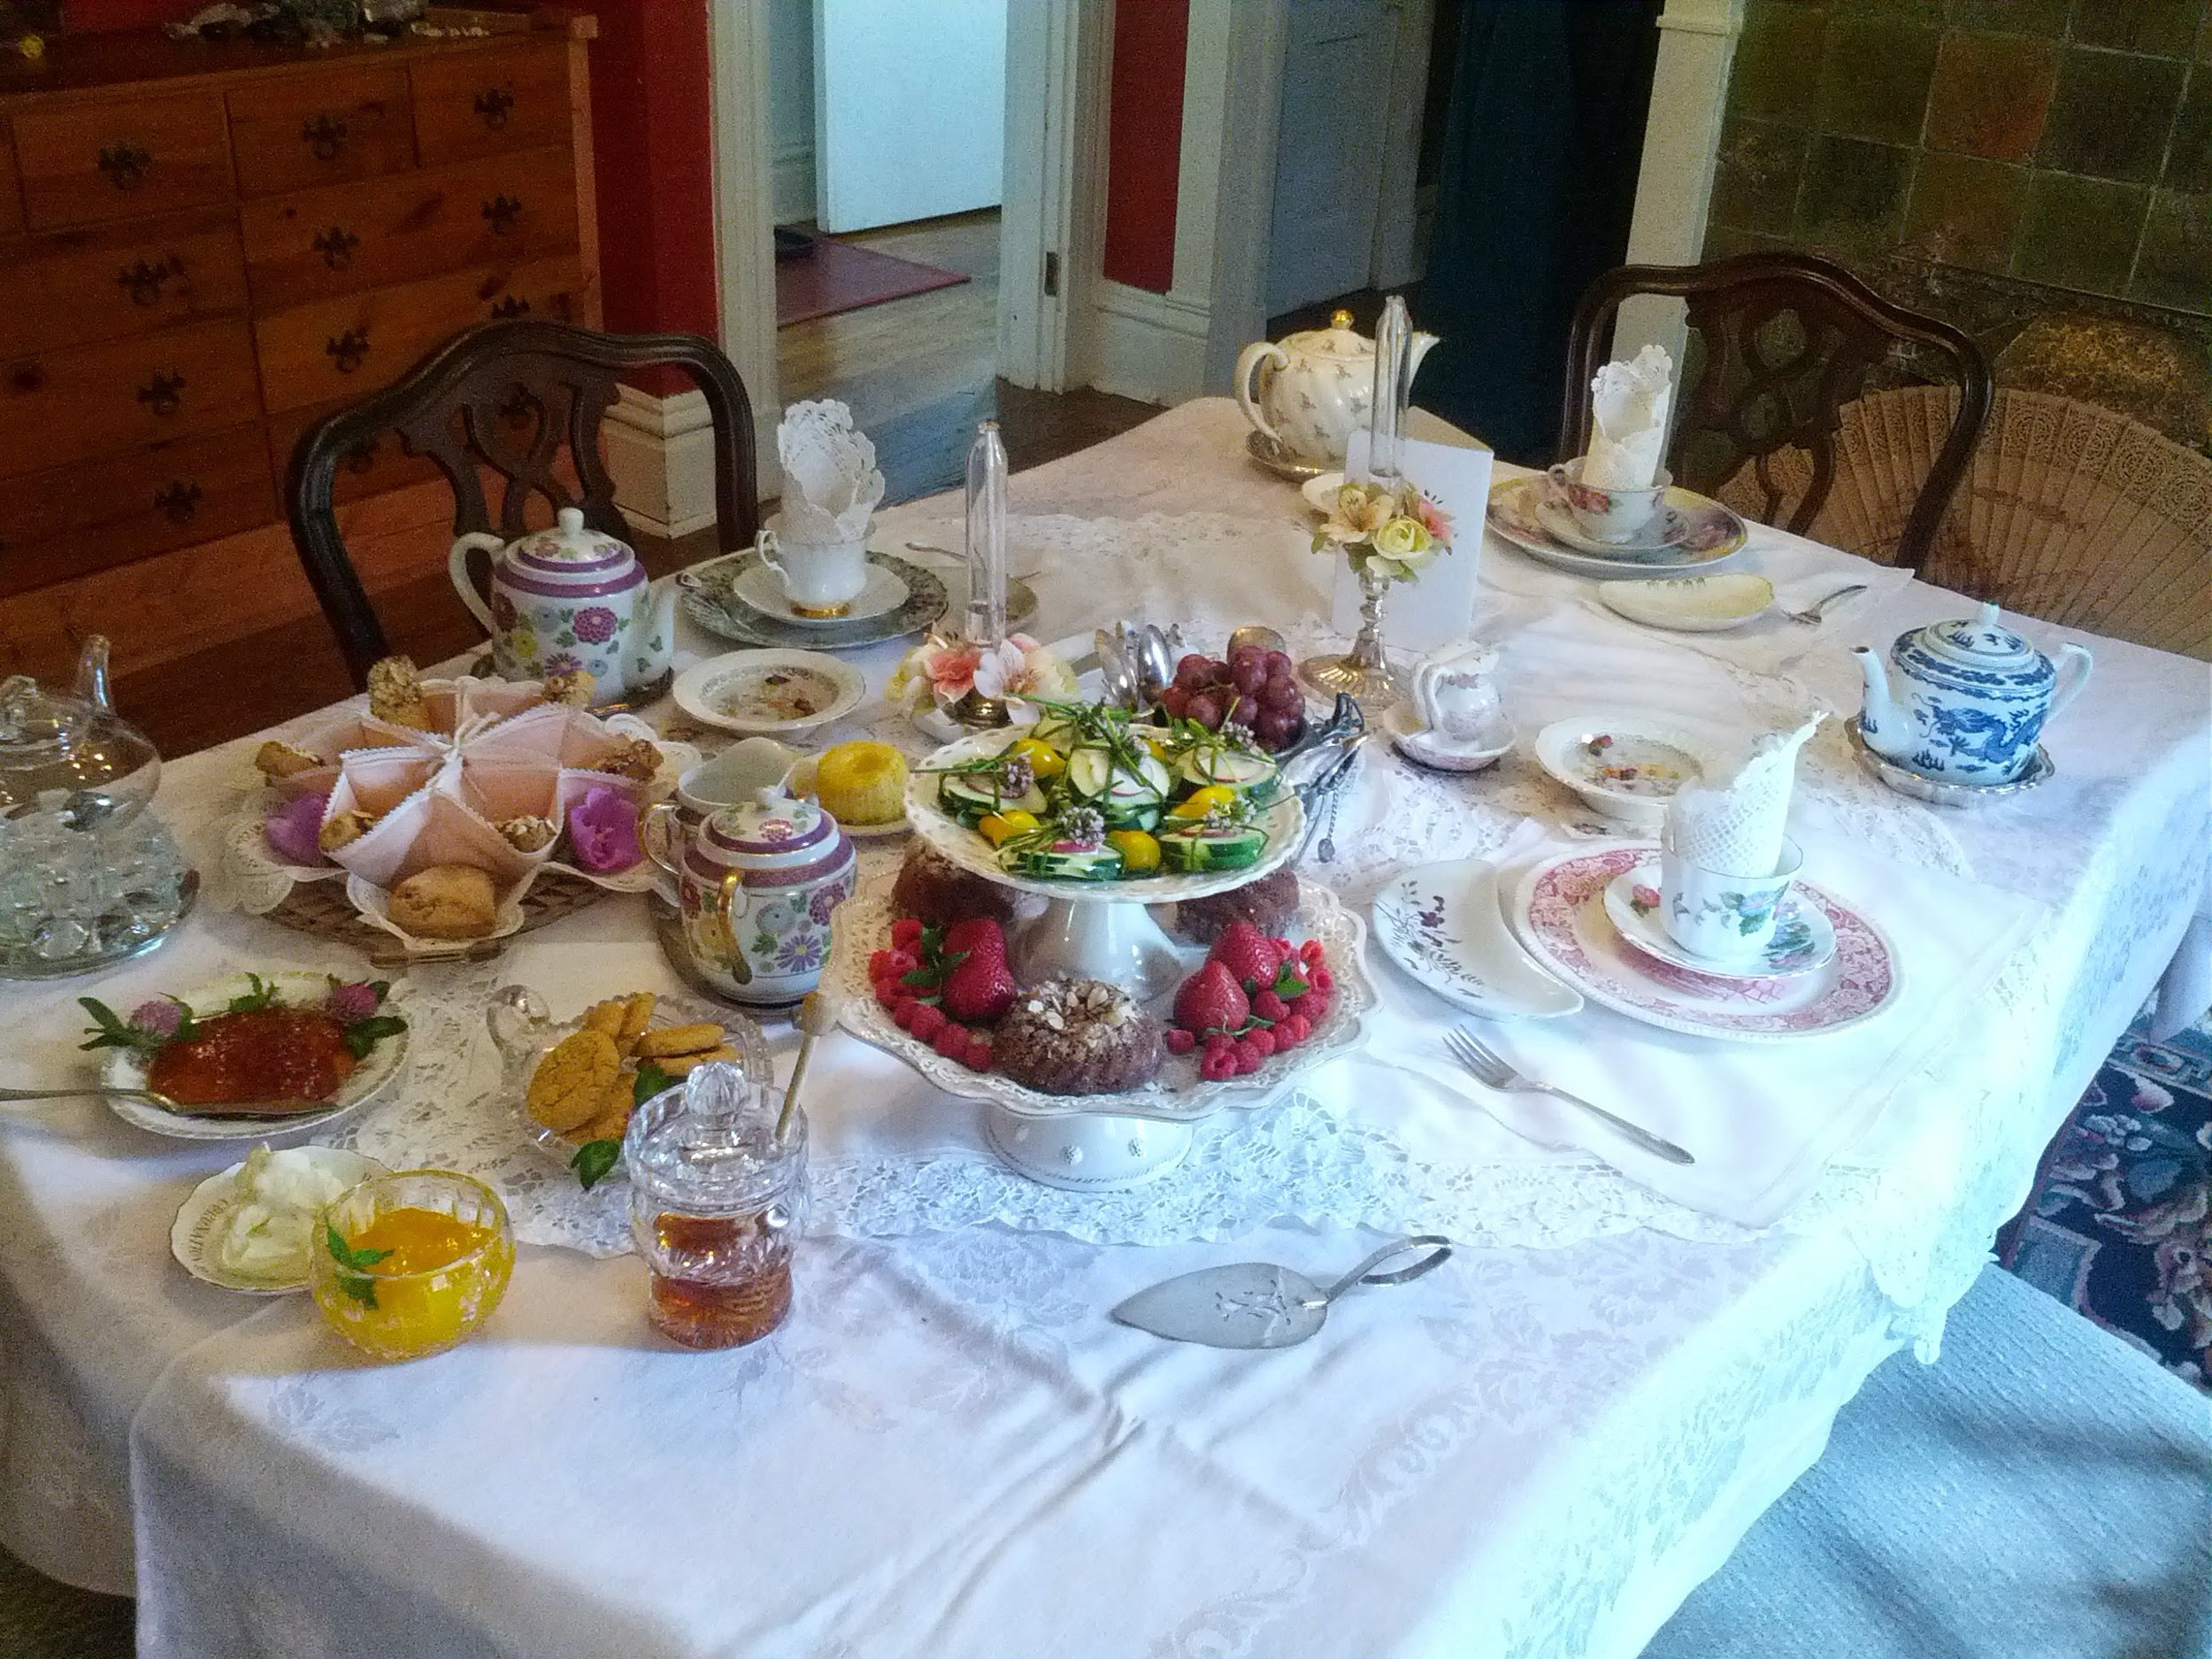 Tea is a tradition for my mother and me